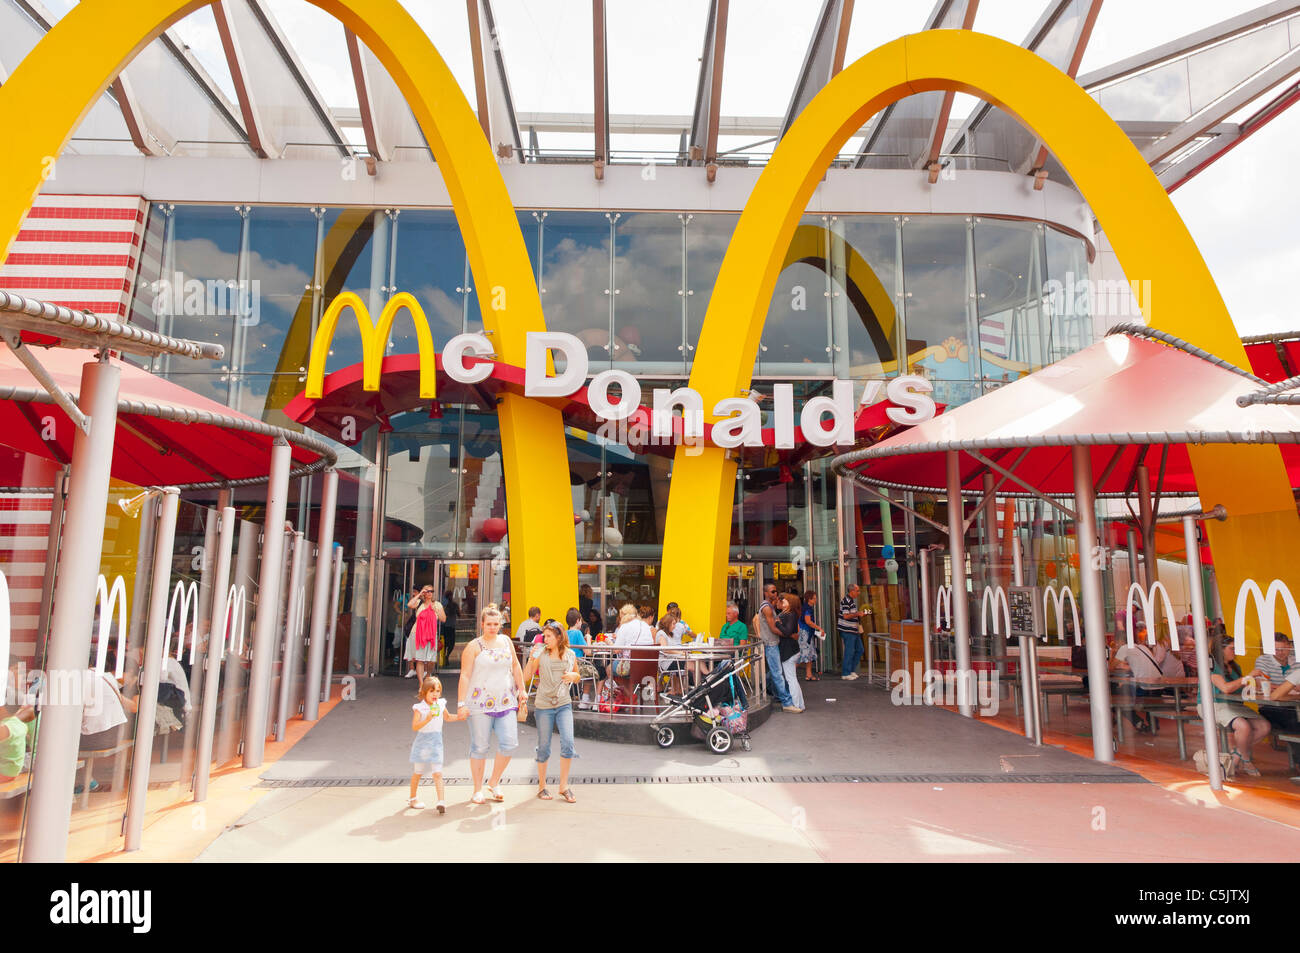 The Mcdonald's restaurant in Disney Village at Disneyland ...